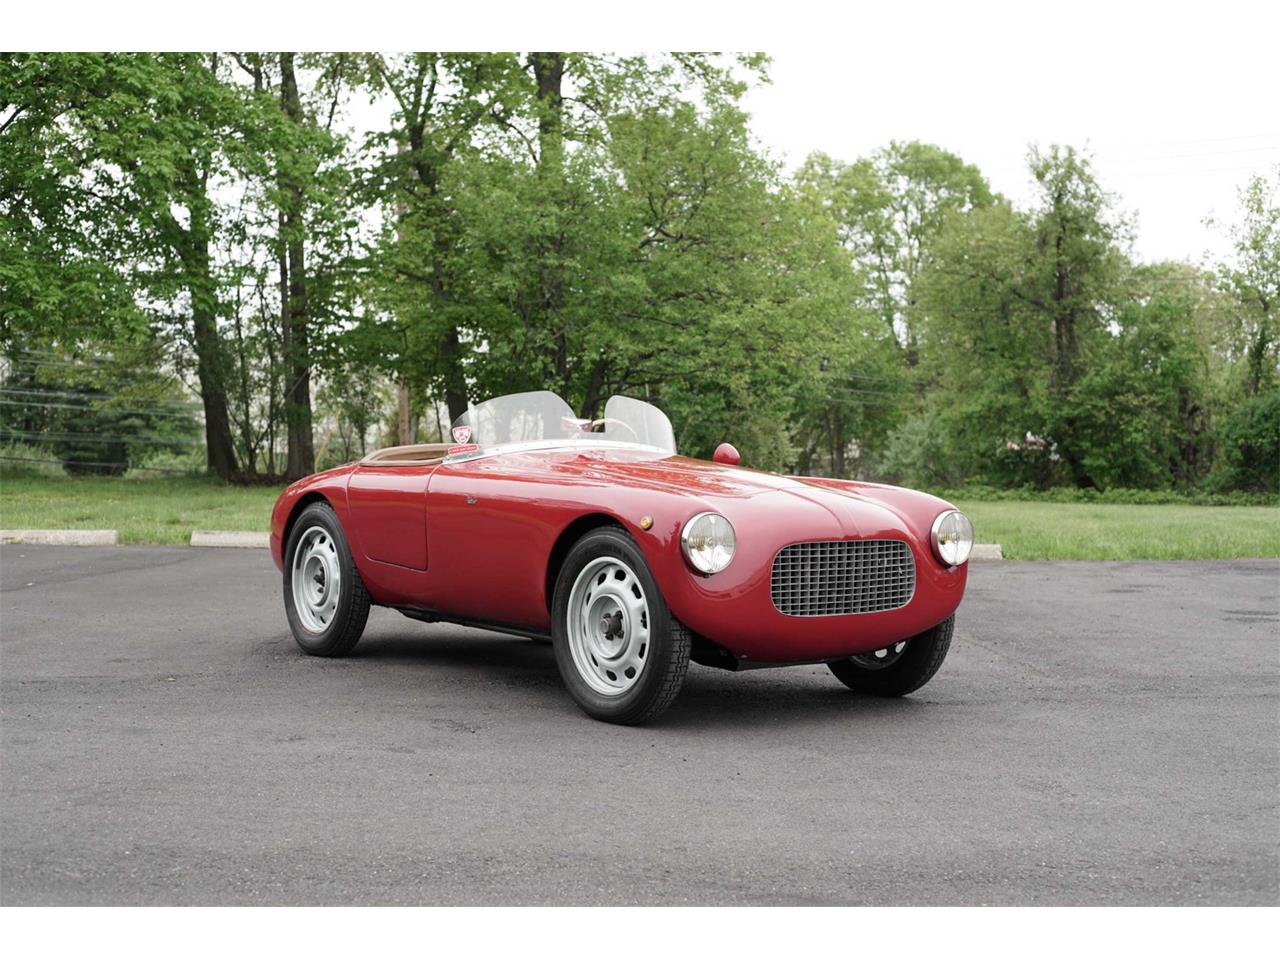 1951 Fiat Stanga Barchetta for sale in Westport, CT